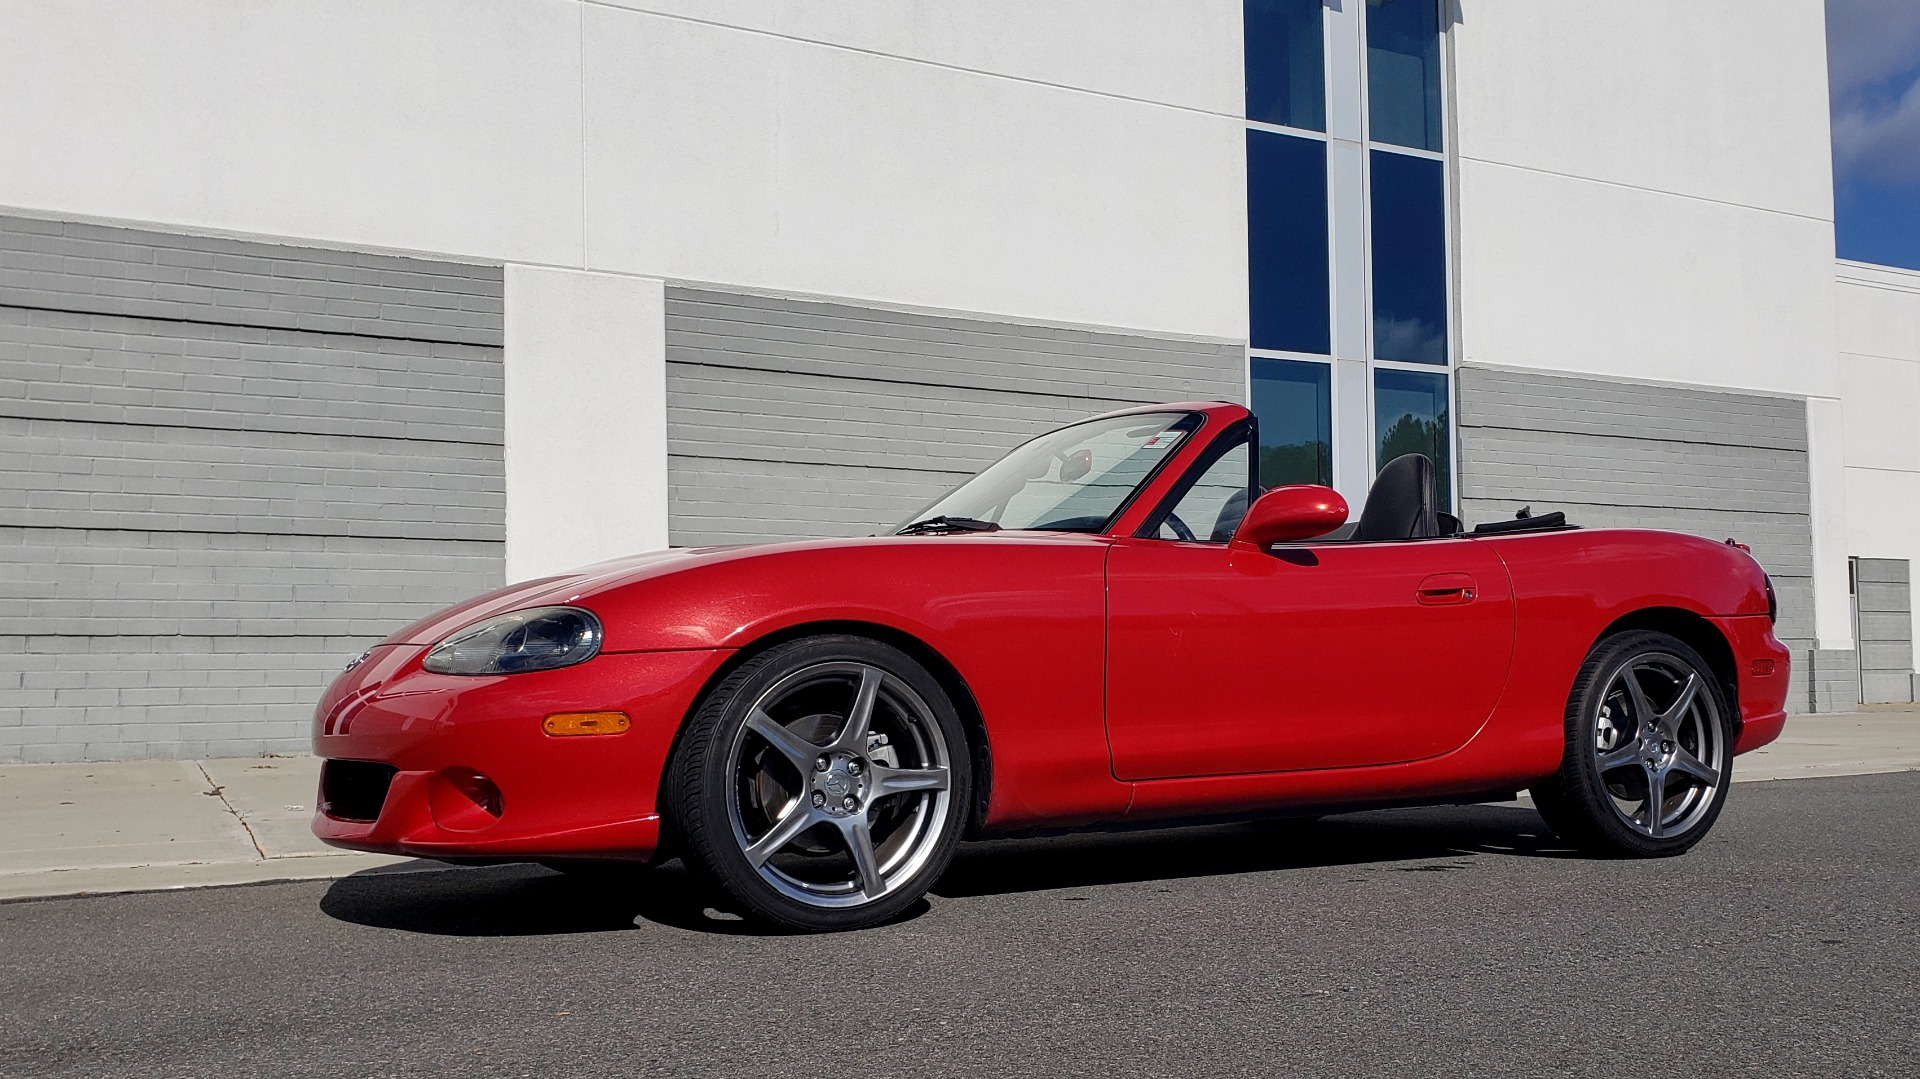 Used 2004 Mazda MX-5 MIATA 2DR CONVERTIBLE MAZDASPEED / GRAND TOURING PKG for sale Sold at Formula Imports in Charlotte NC 28227 4